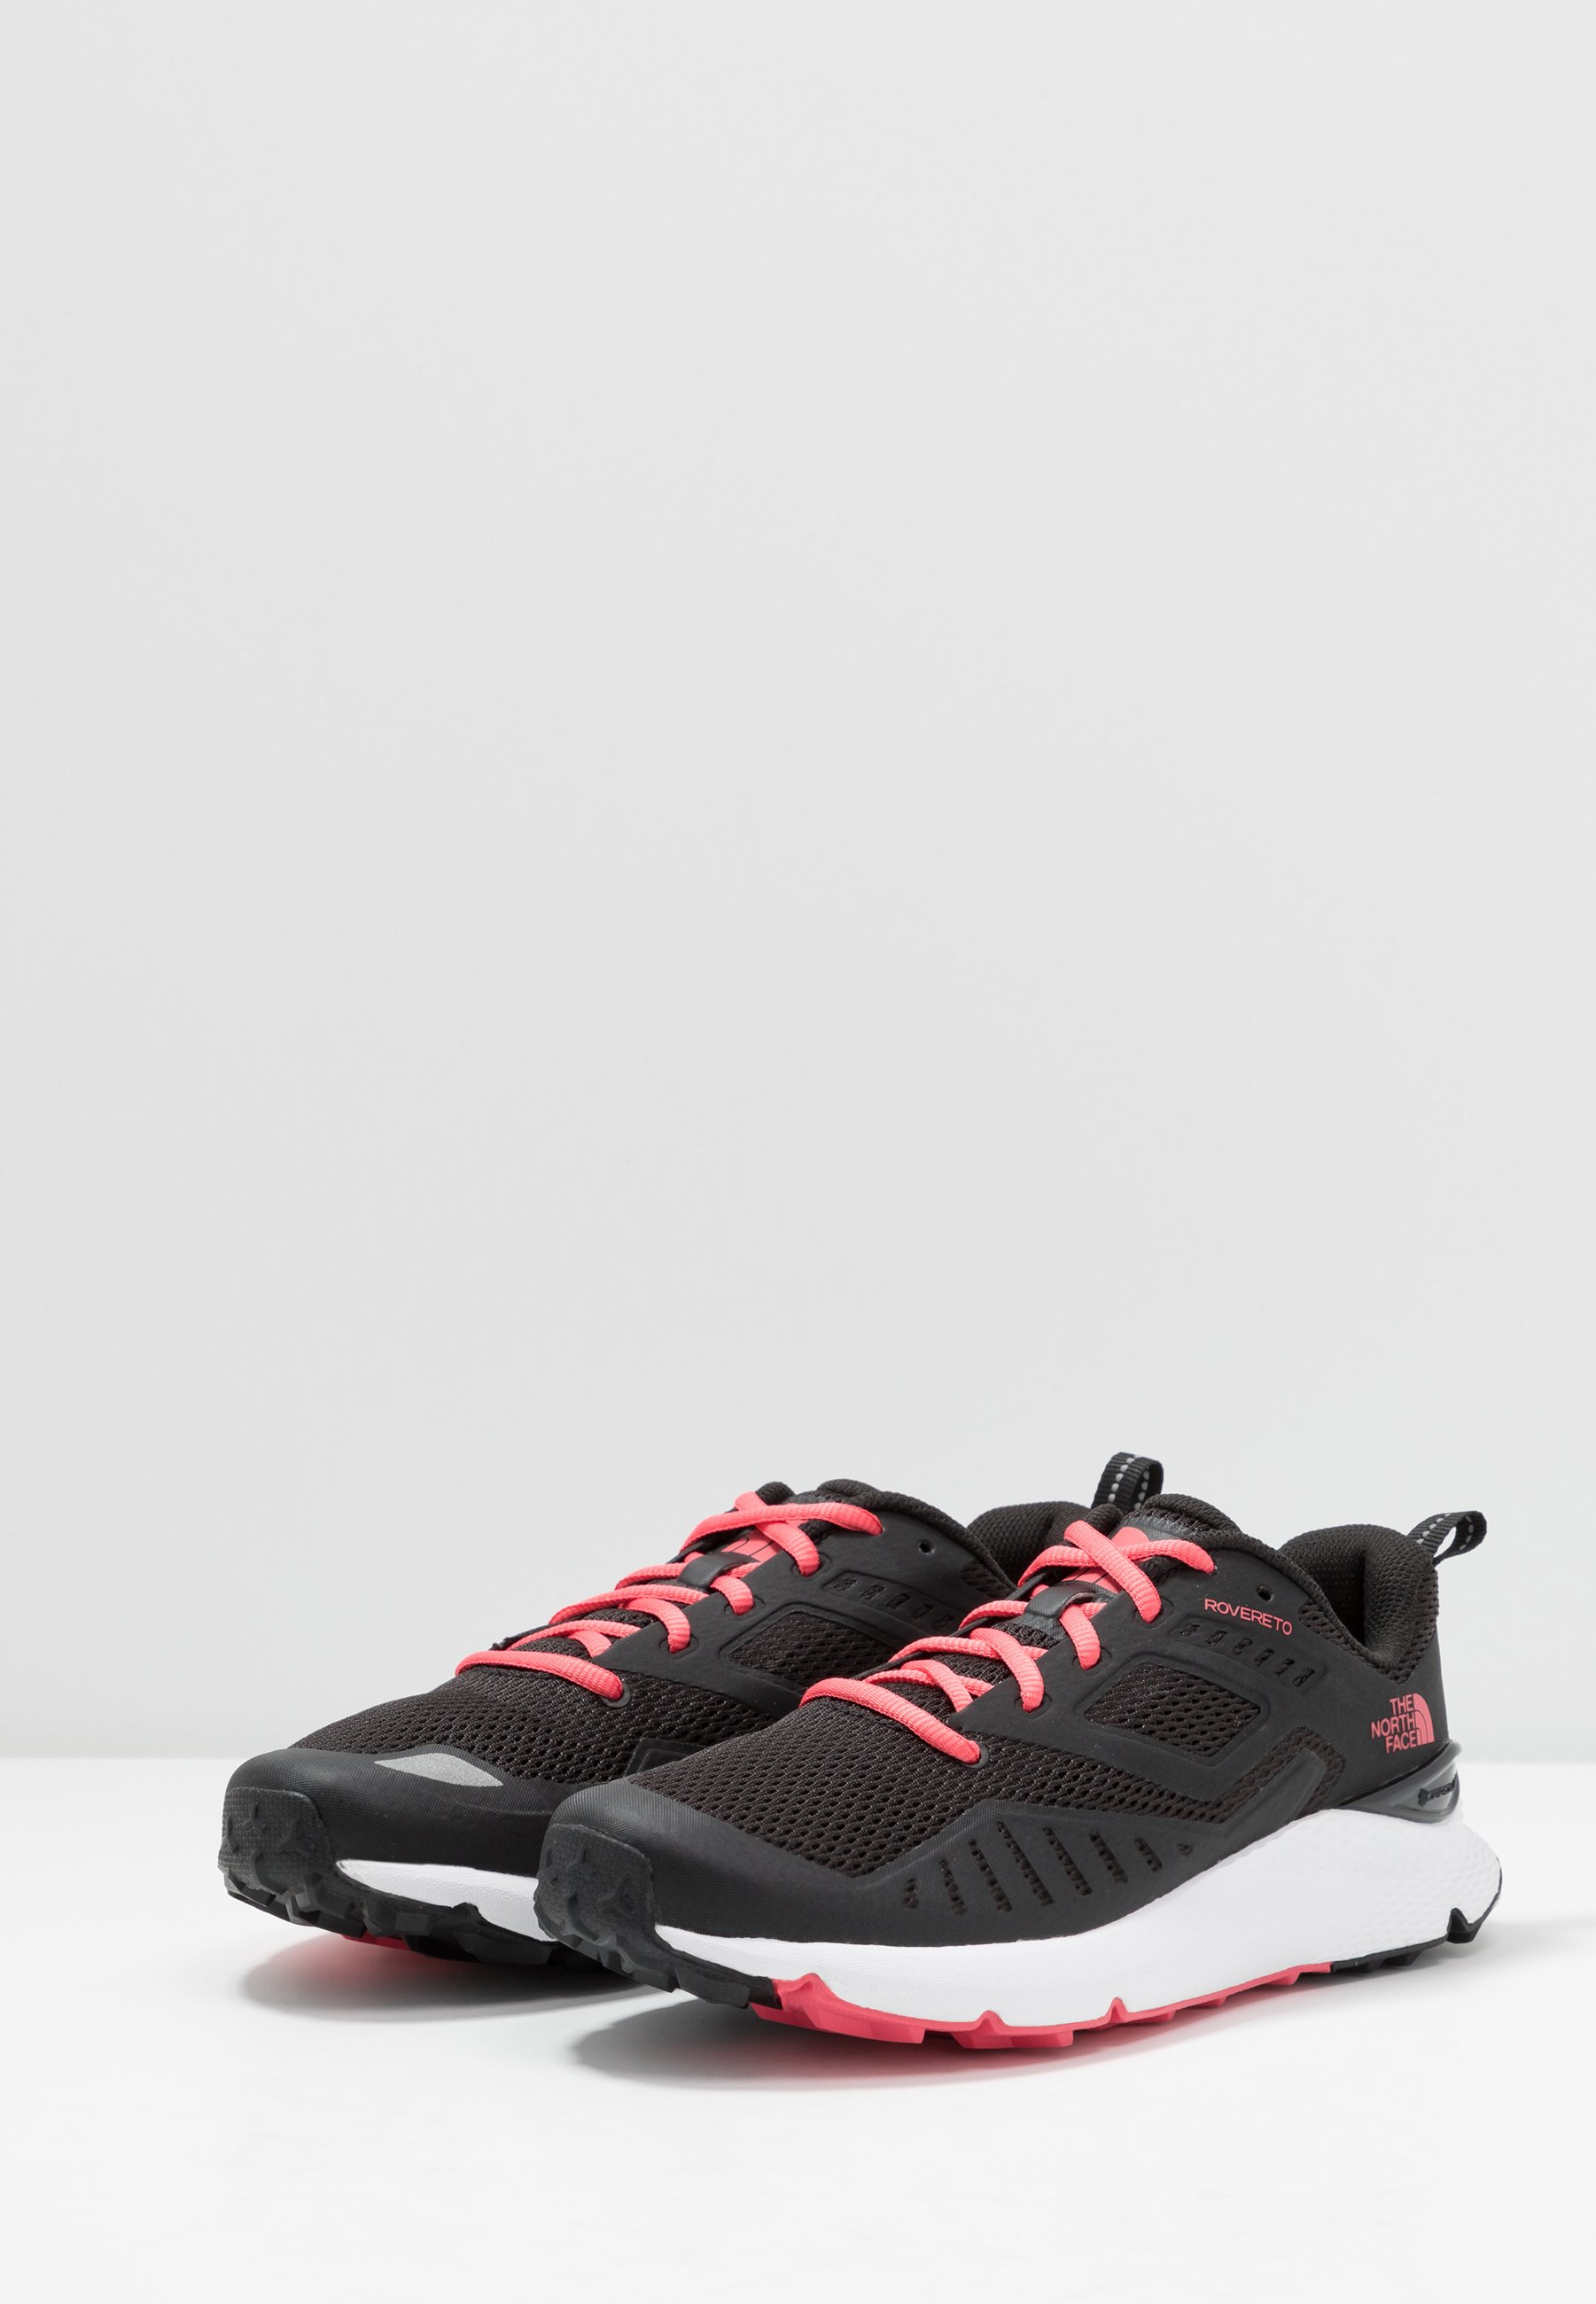 The North Face Rovereto - Chaussures De Running Black/calypso Coral 3ageXgj